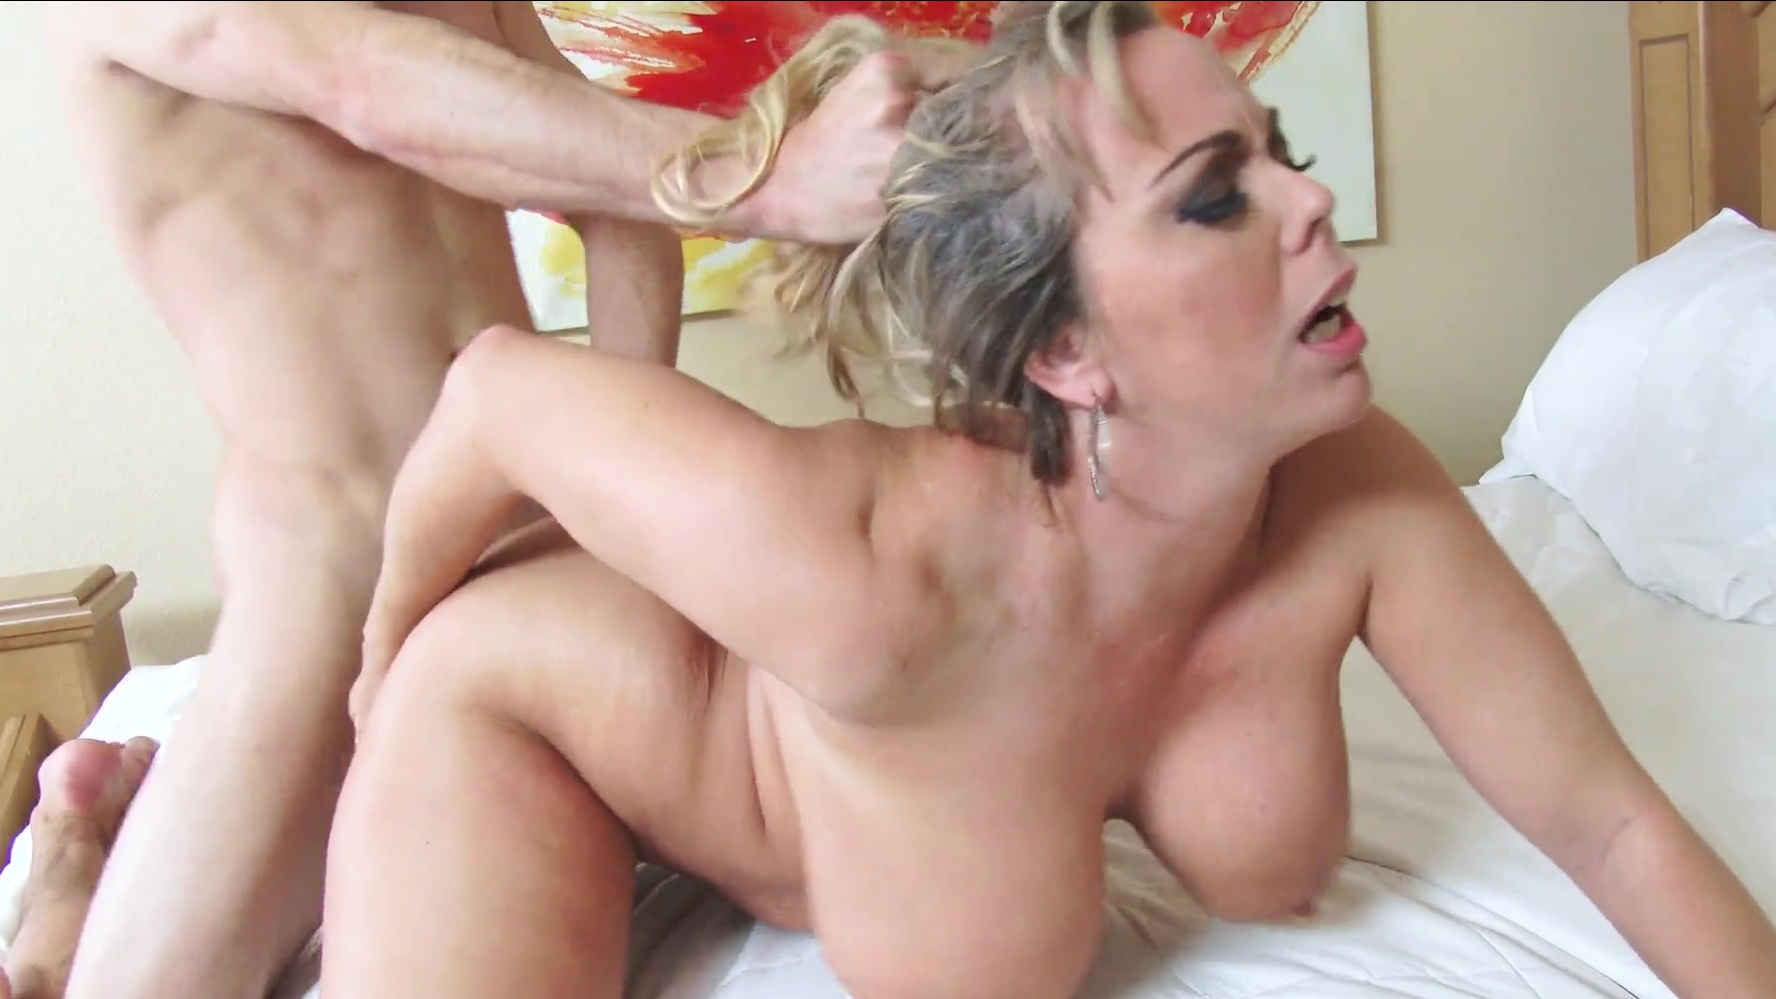 Spicy Blonde Milf With Big Tits Alura Tnt Jenson Likes Rough Sex